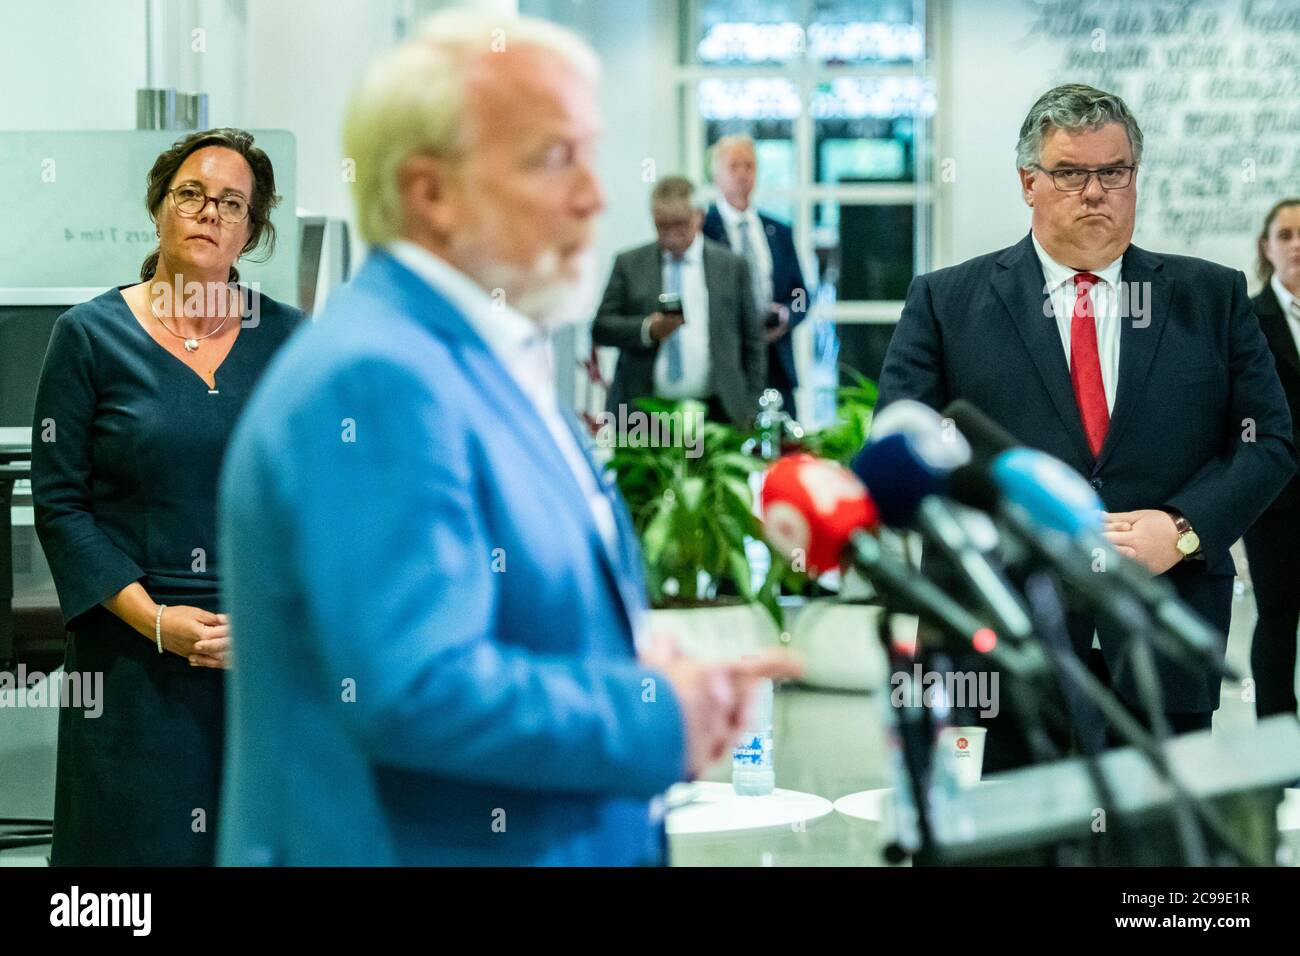 Utrecht Netherlands 29th July 2020 Utrecht 29 07 2020 Press Conference After Safety Board About The